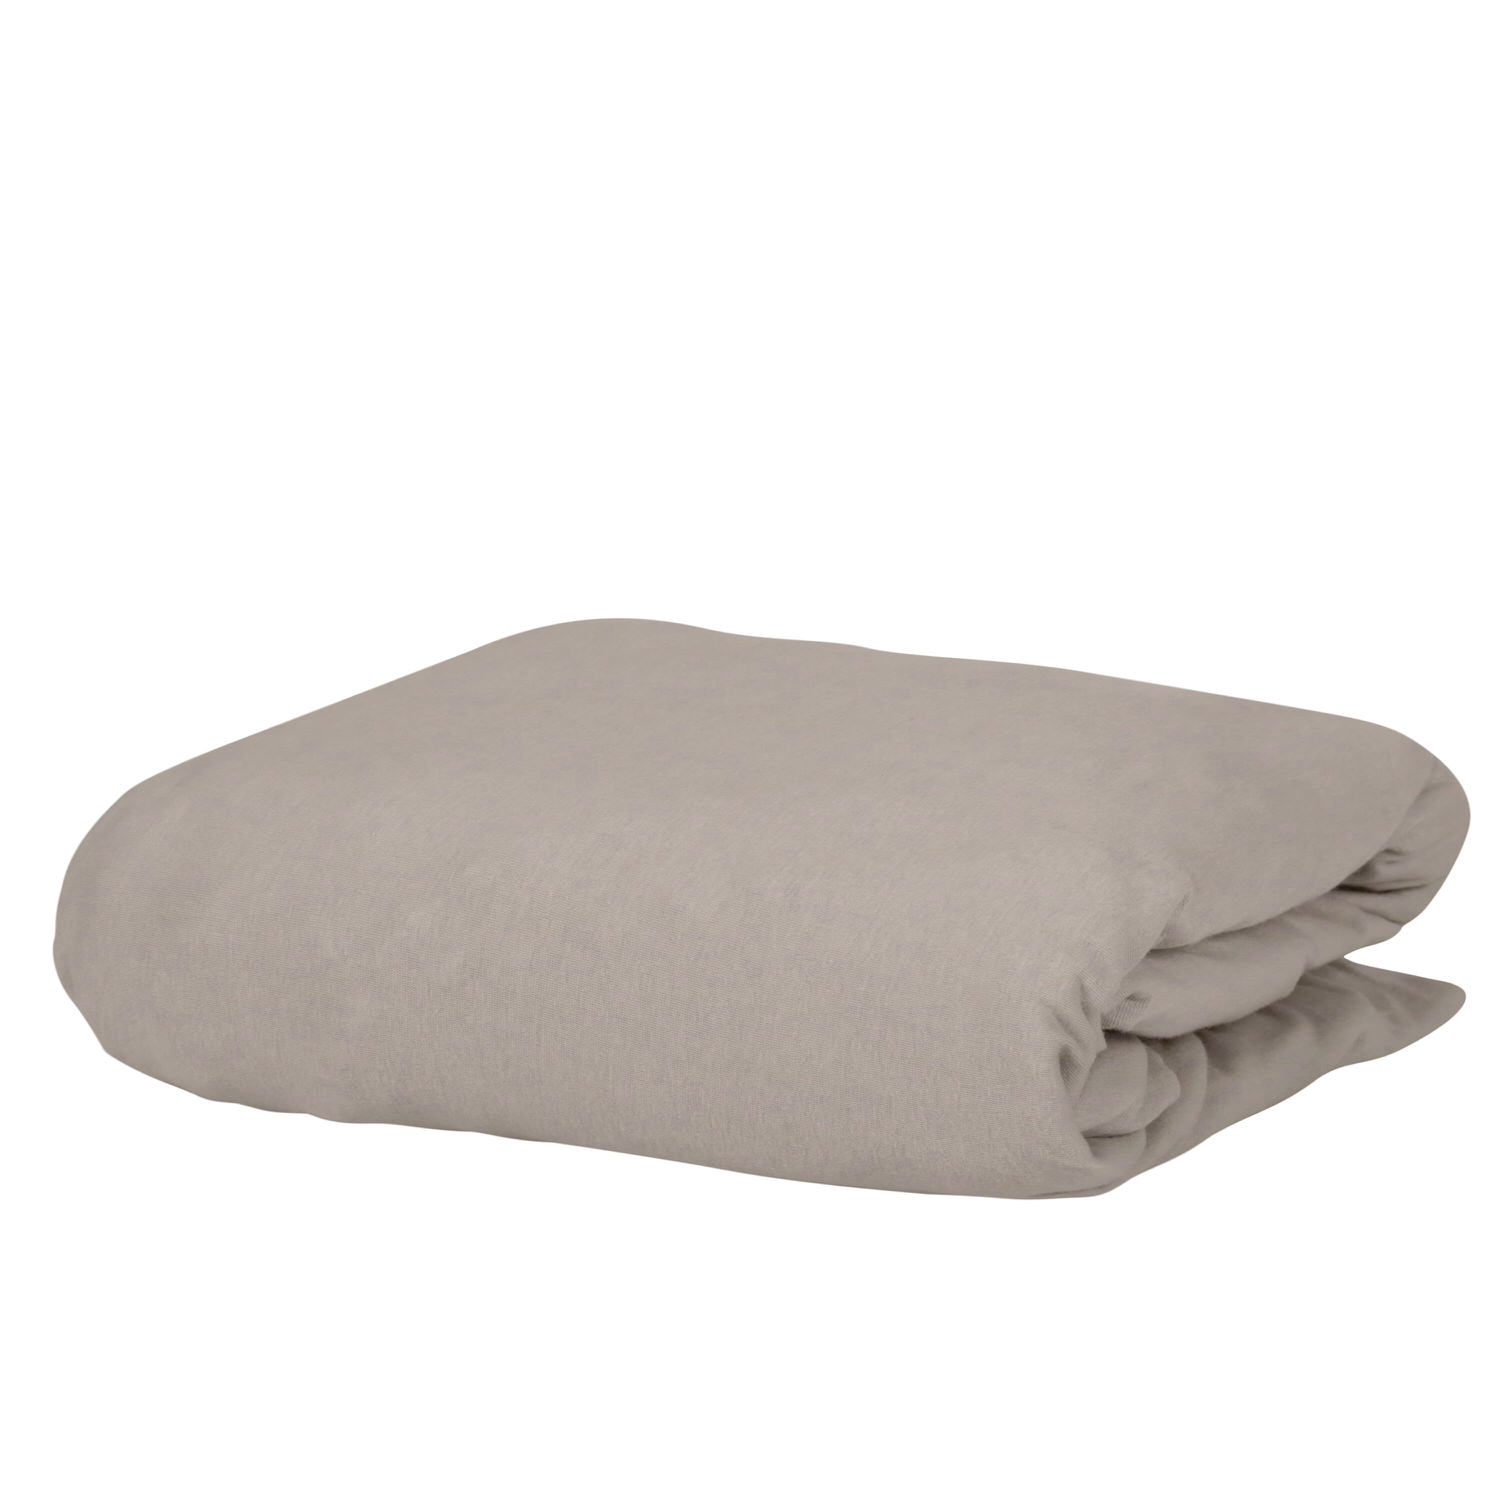 100% Premium Combed Cotton Jersey Beige Fitted Sheet with Aloe Vera Treatment